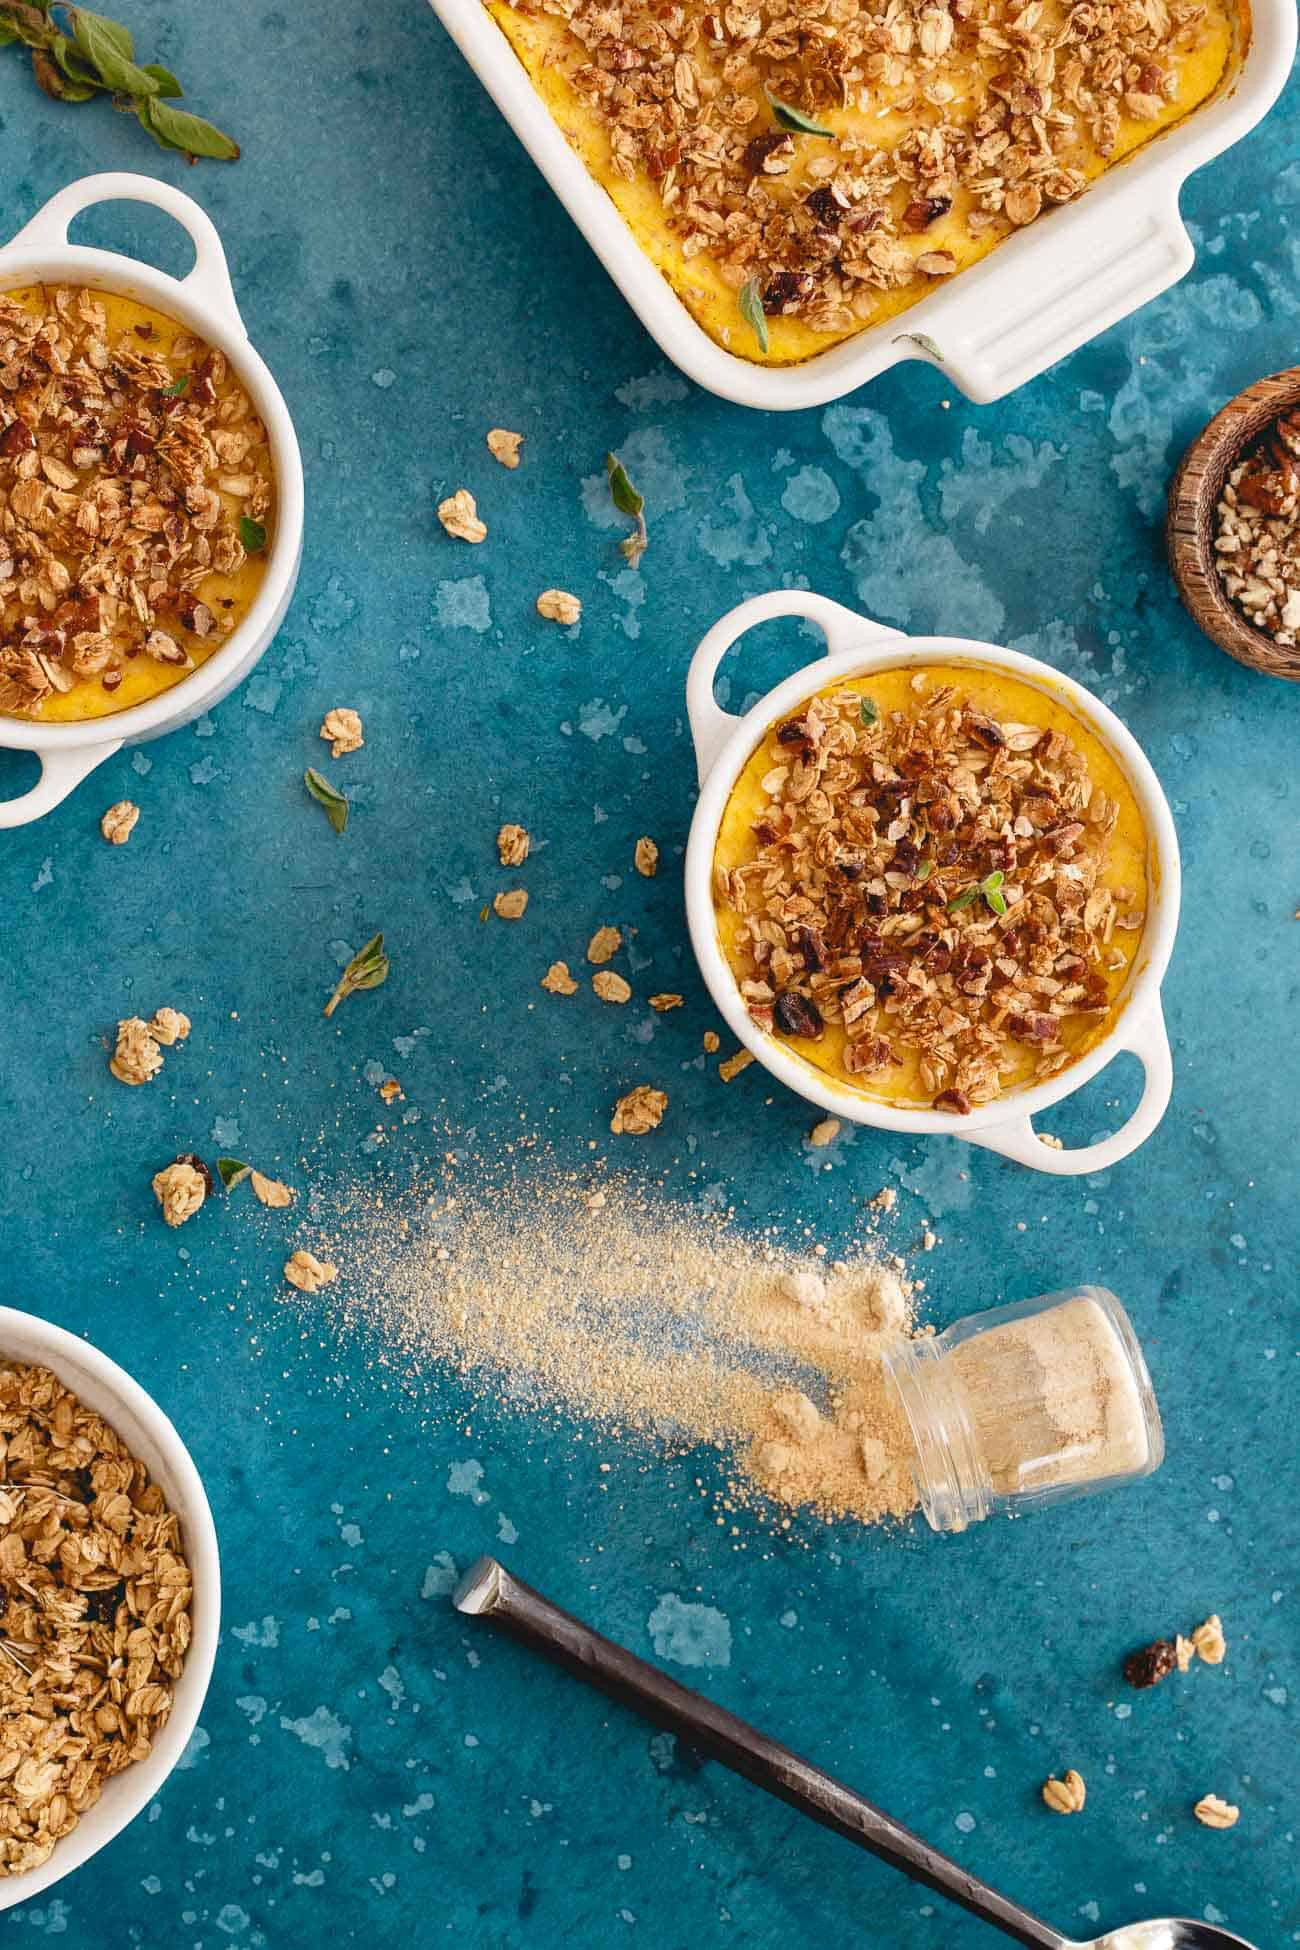 This cauliflower pumpkin mash is made with creamy marscapone and topped with vanilla granola and pecans. A healthier alternative to sweet potato casserole!